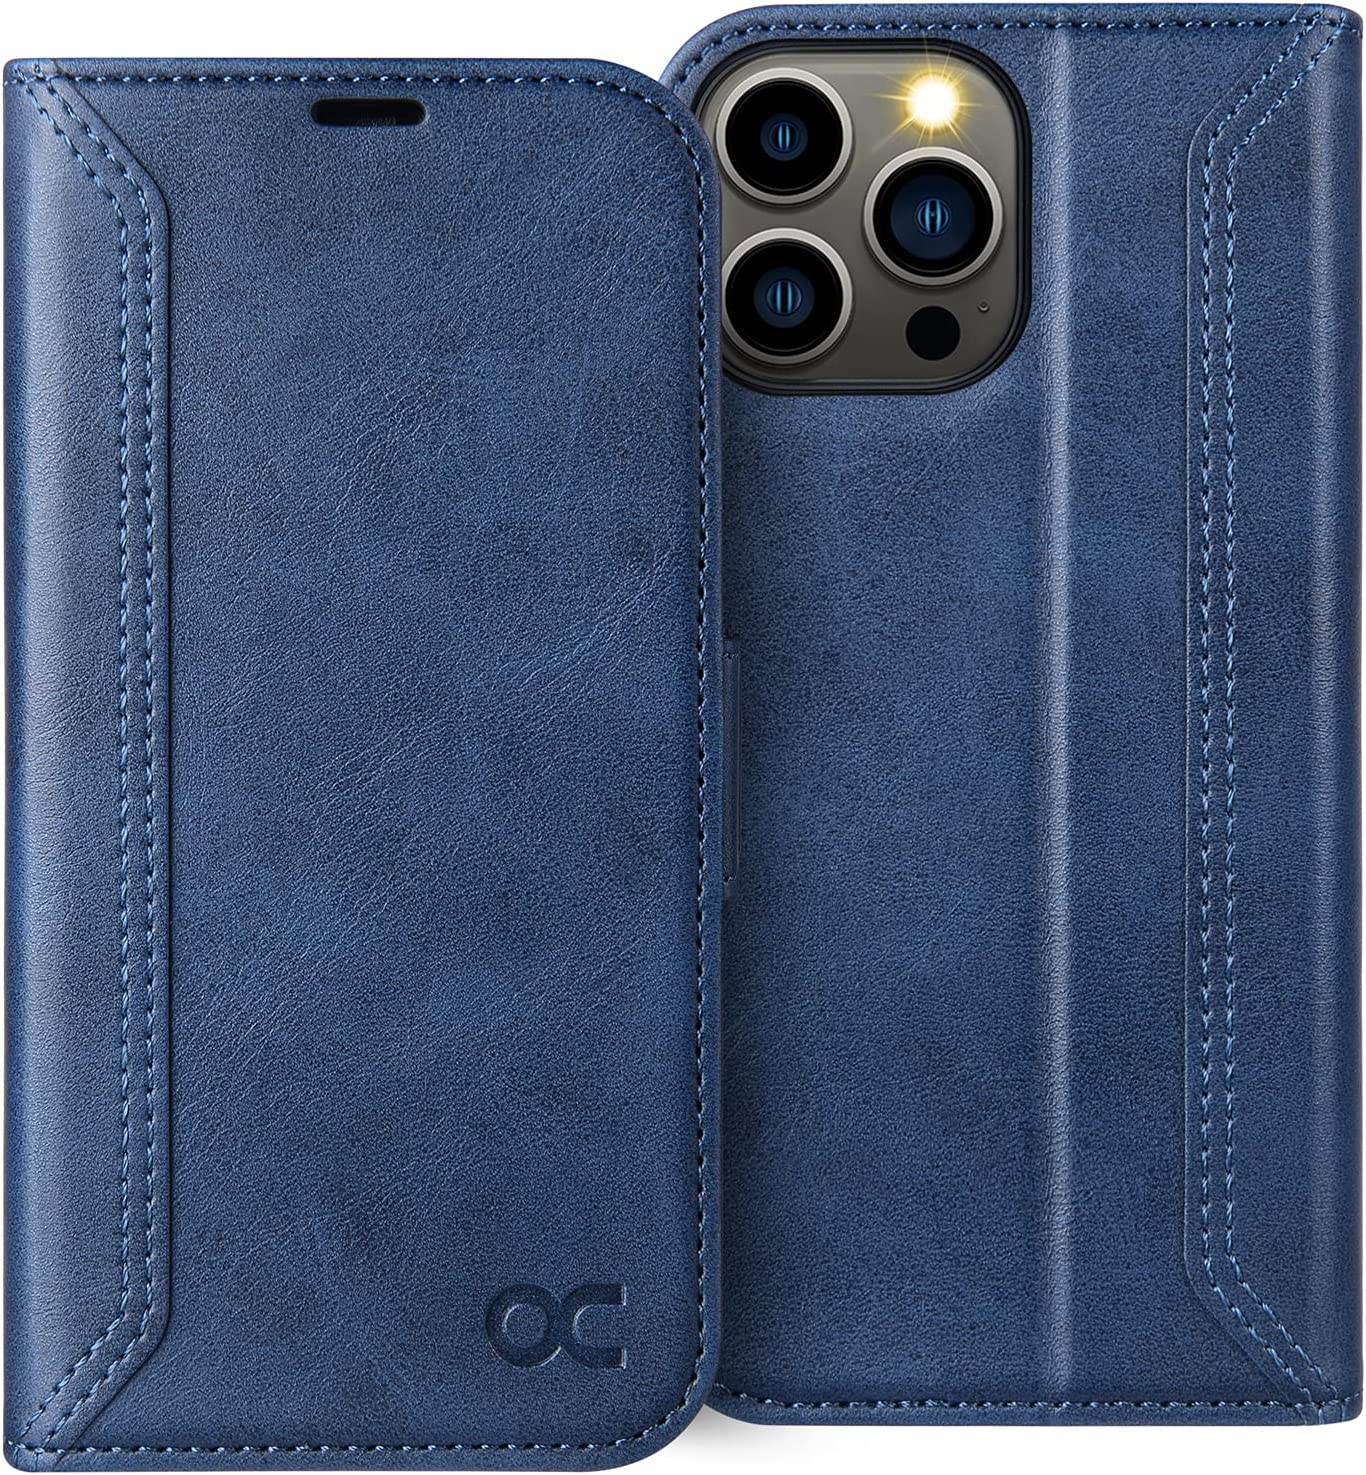 OCASE Retro Series Compatible with iPhone 13 Pro Max Wallet Case with Card Holders [RFID Blocking][TPU Inner Shell ][Kickstand] Shockproof PU Leather Flip Folio Phone Cover 6.7 inch 2021 (Blue)